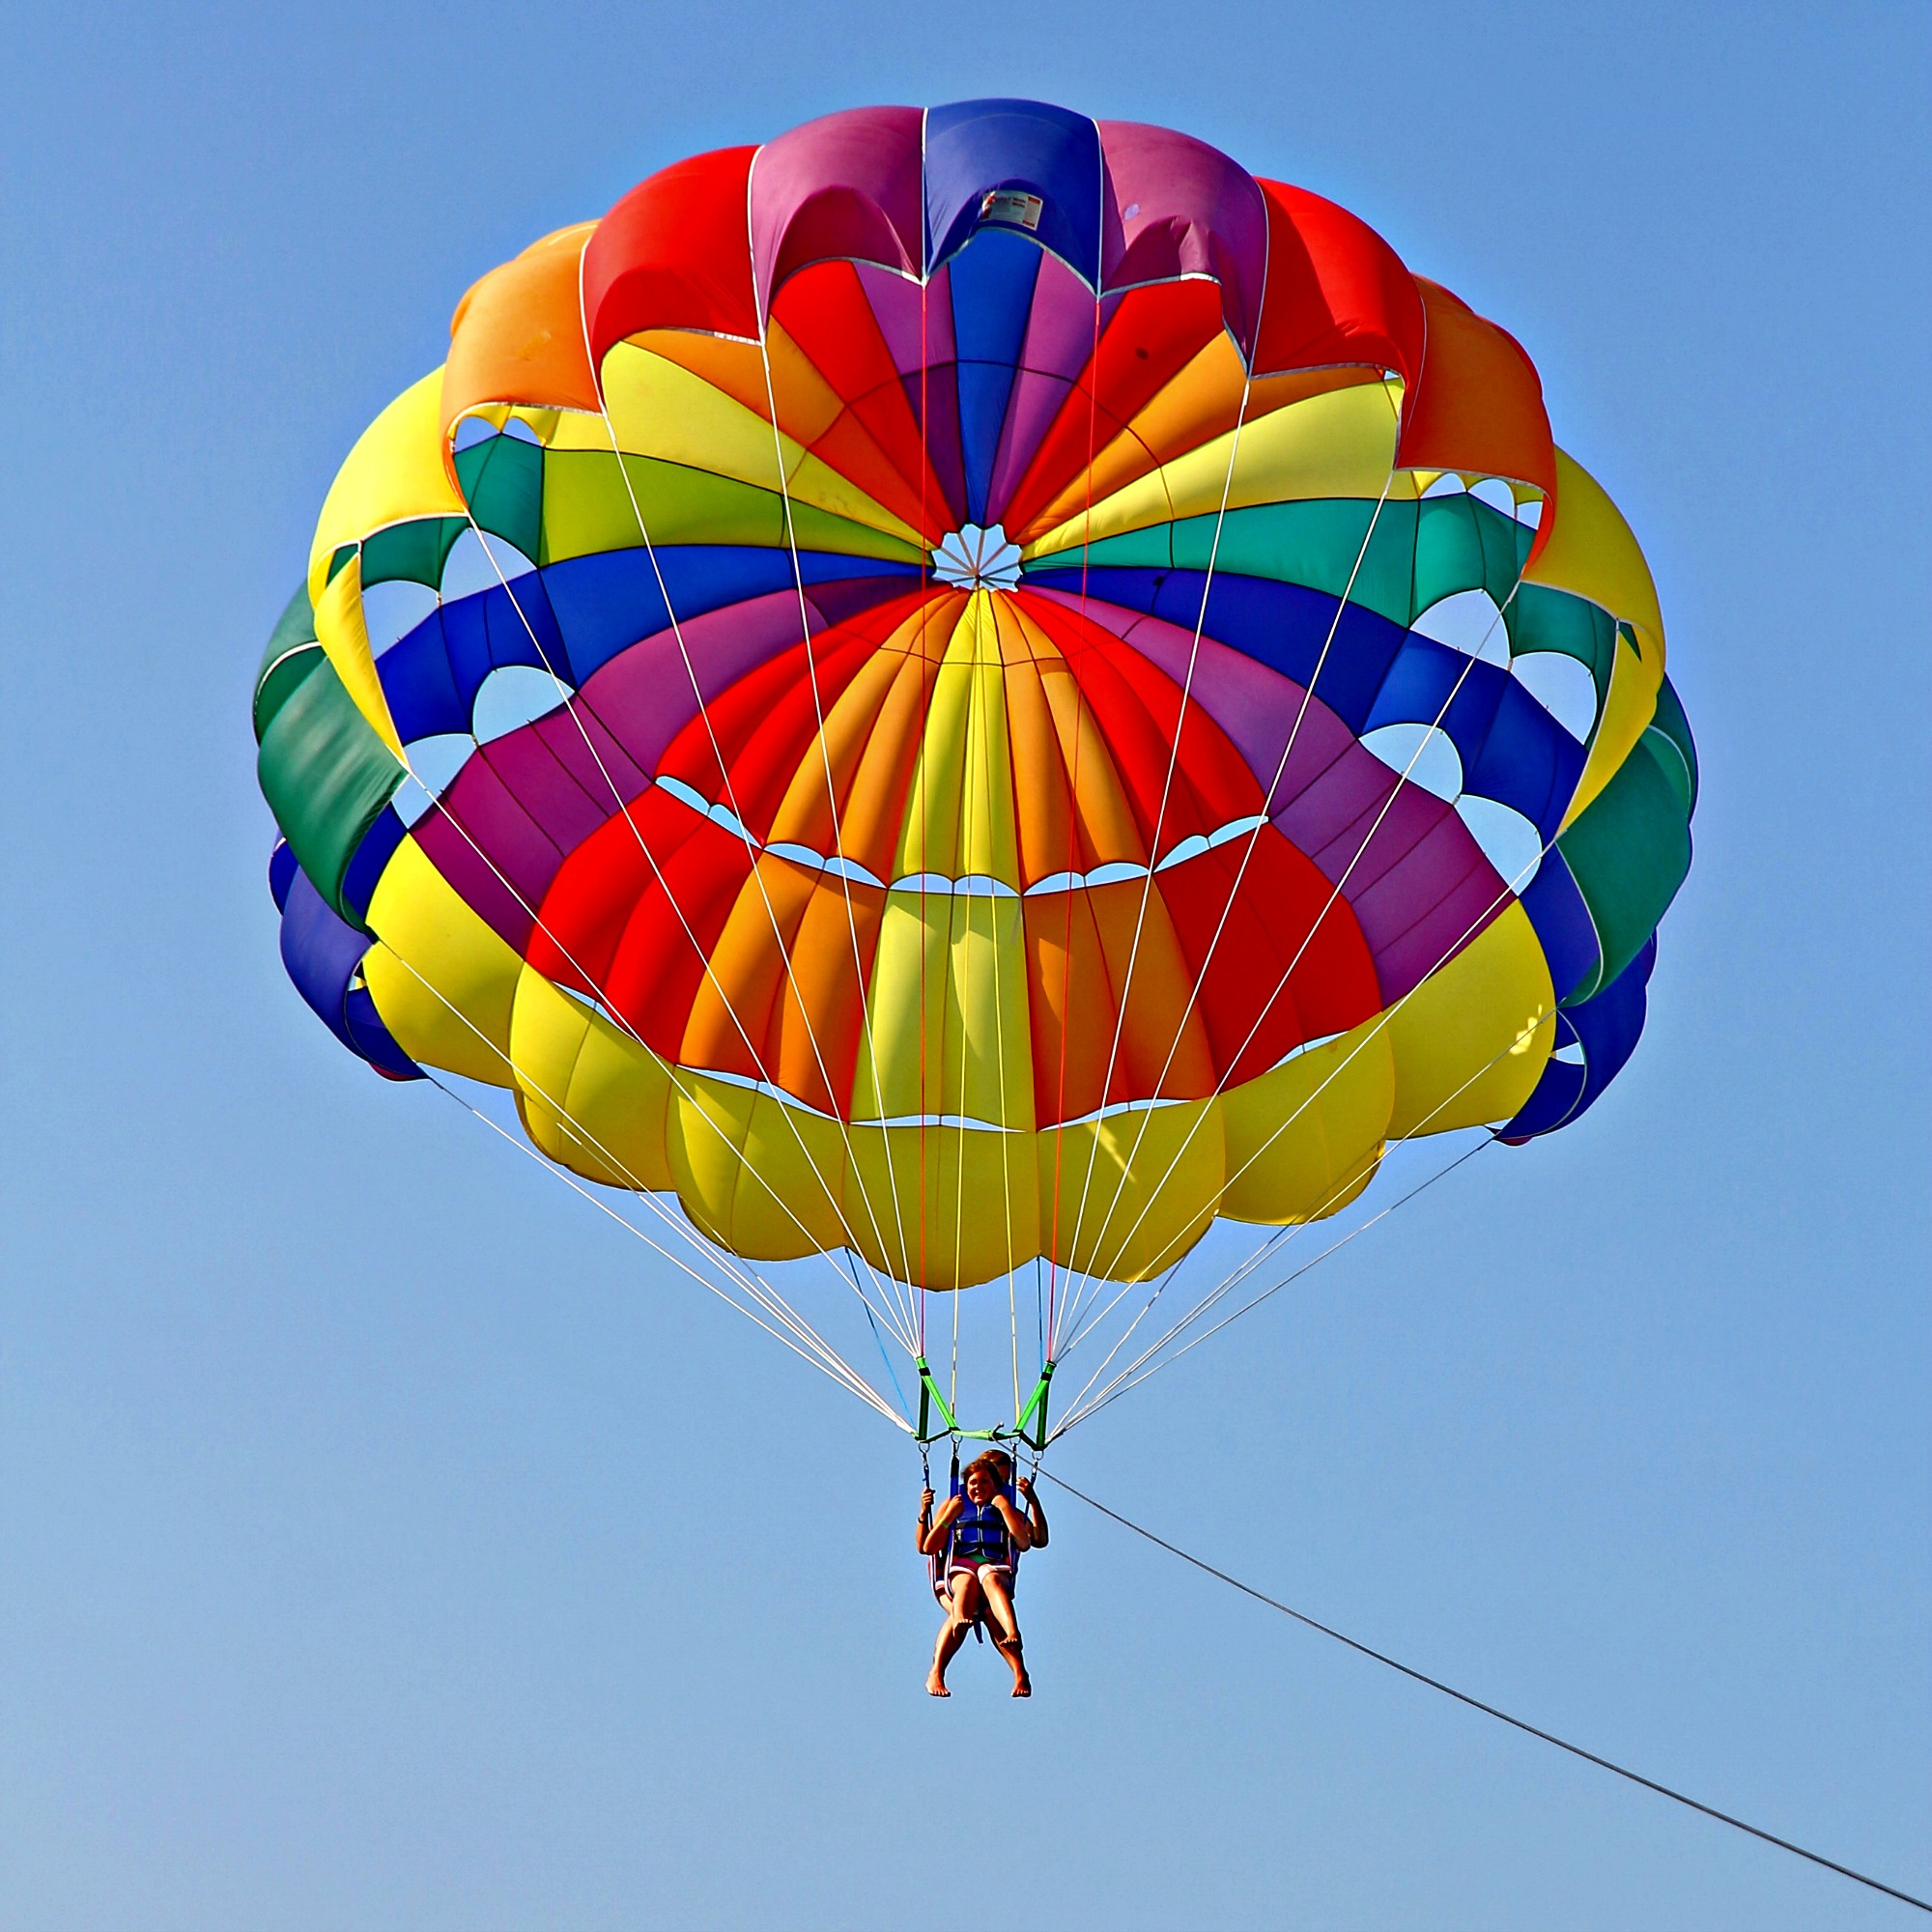 parasailers with multi-colored canopy